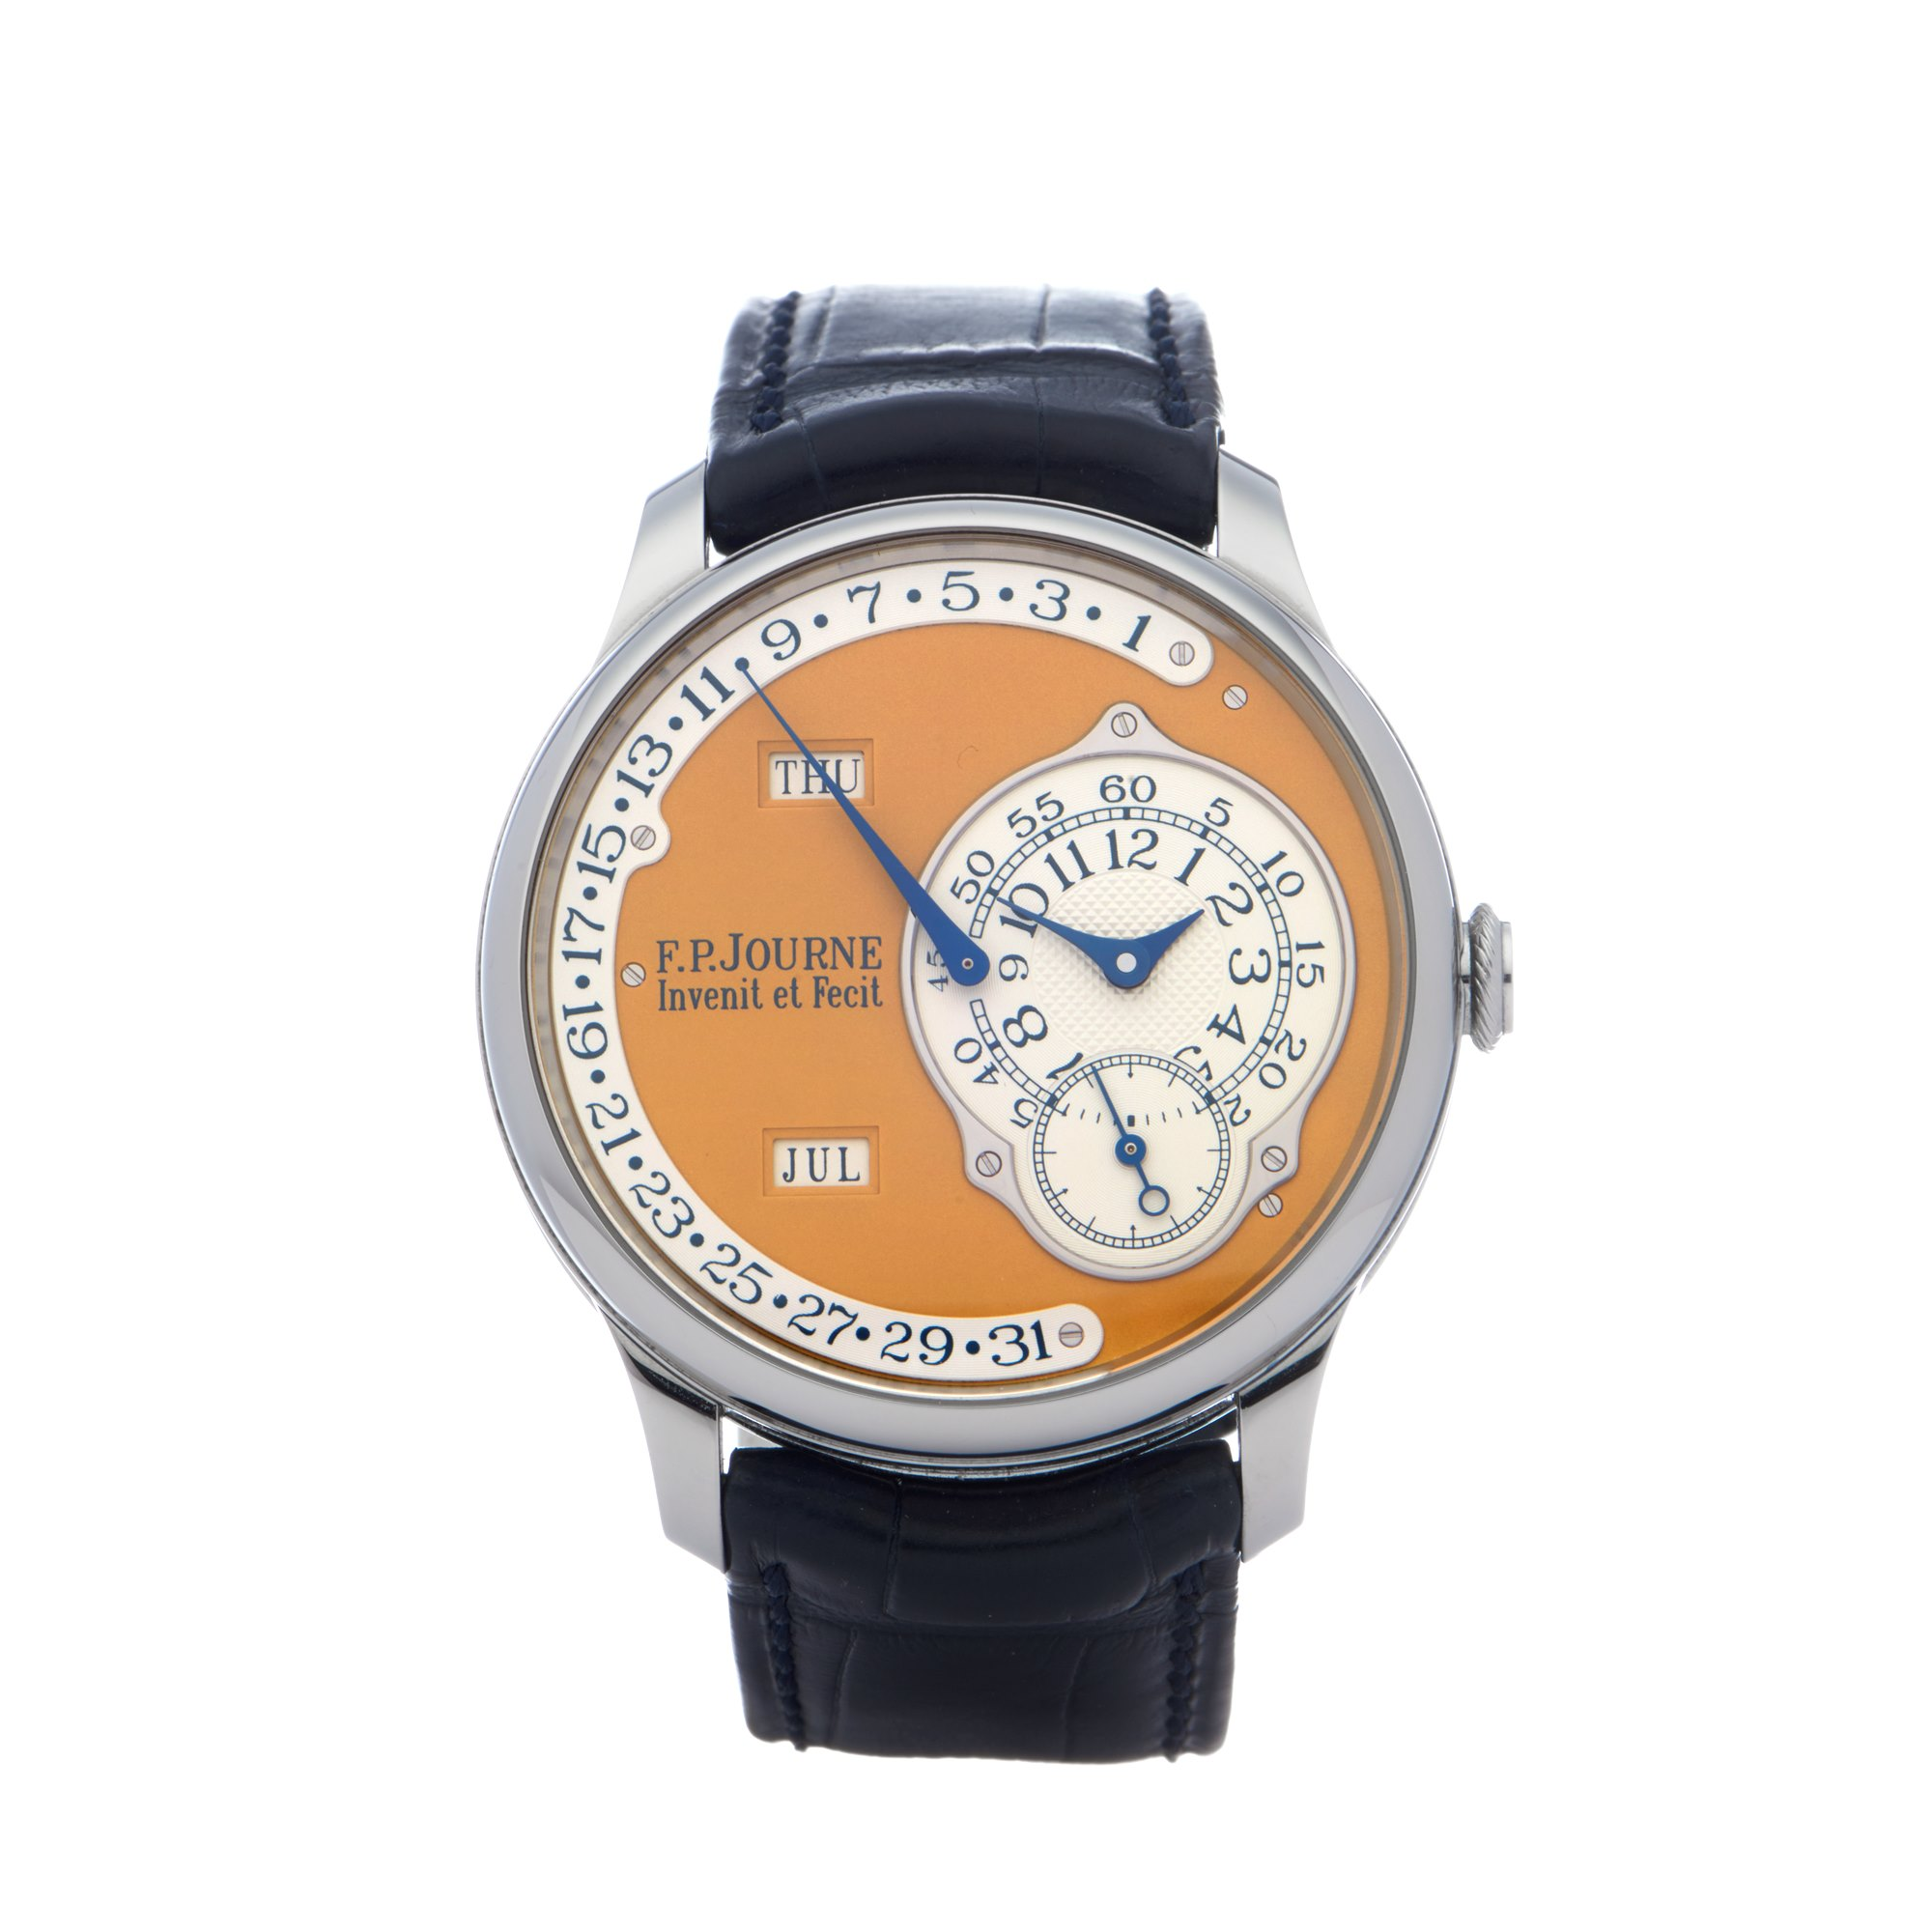 F.P Journe Octa Calendrier Limited Edition of 38 Pieces Stainless Steel Stainless Steel